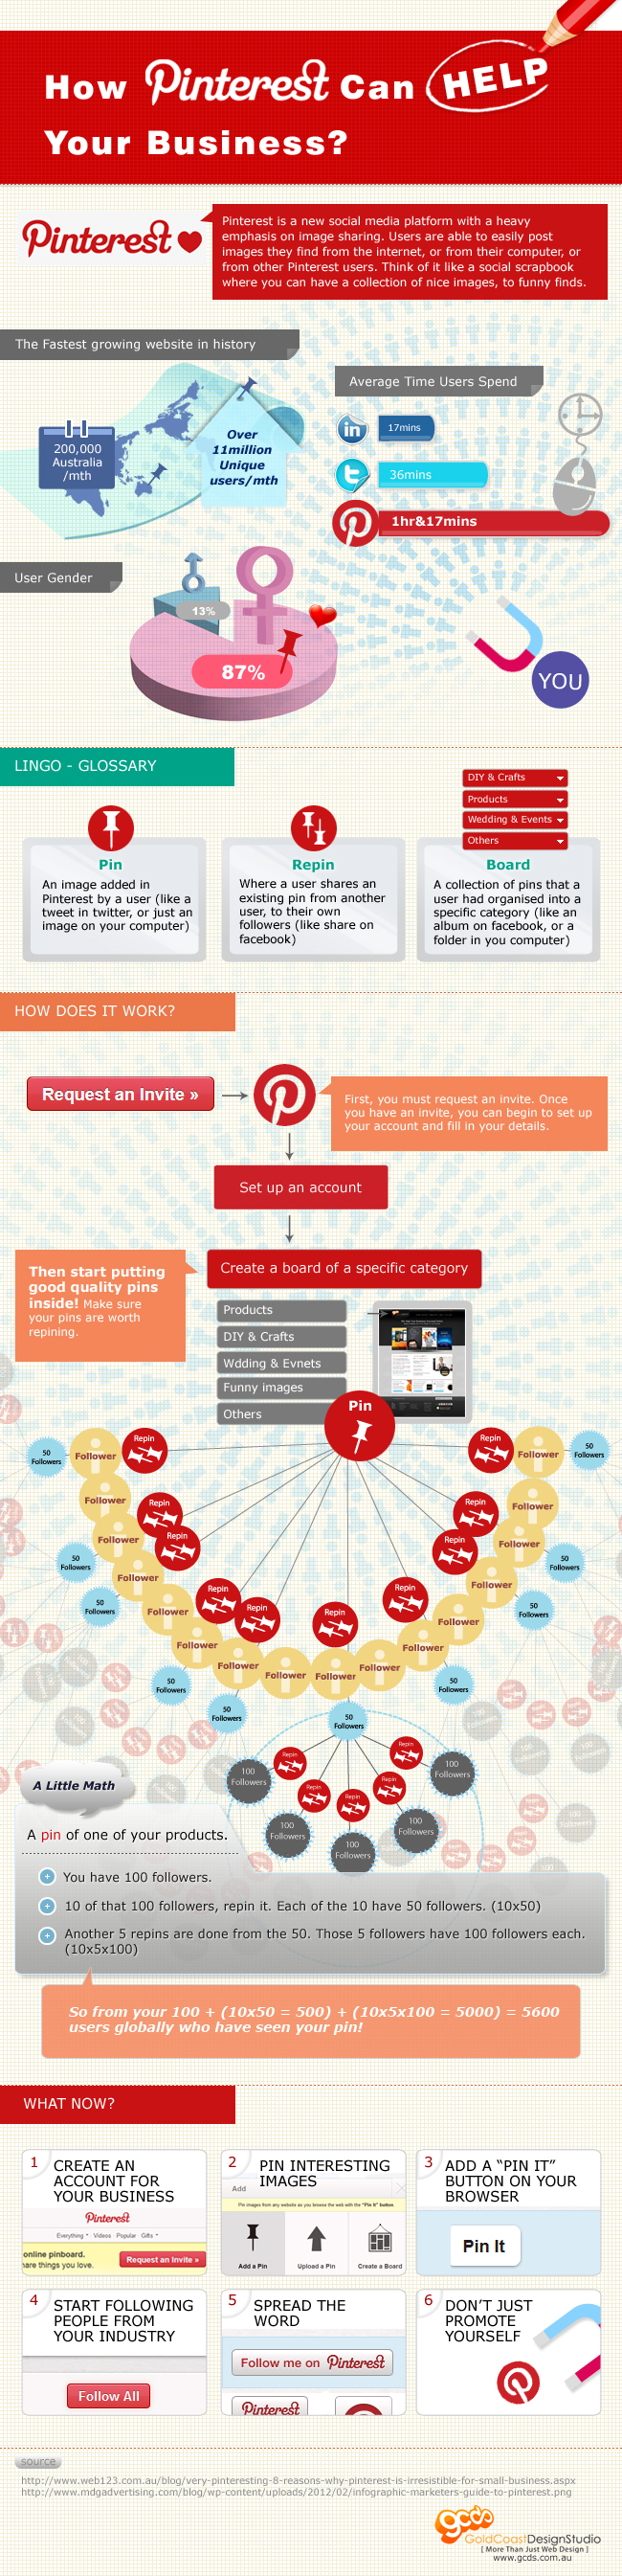 Infographic: How Pinterest Can Help Improve Your Business